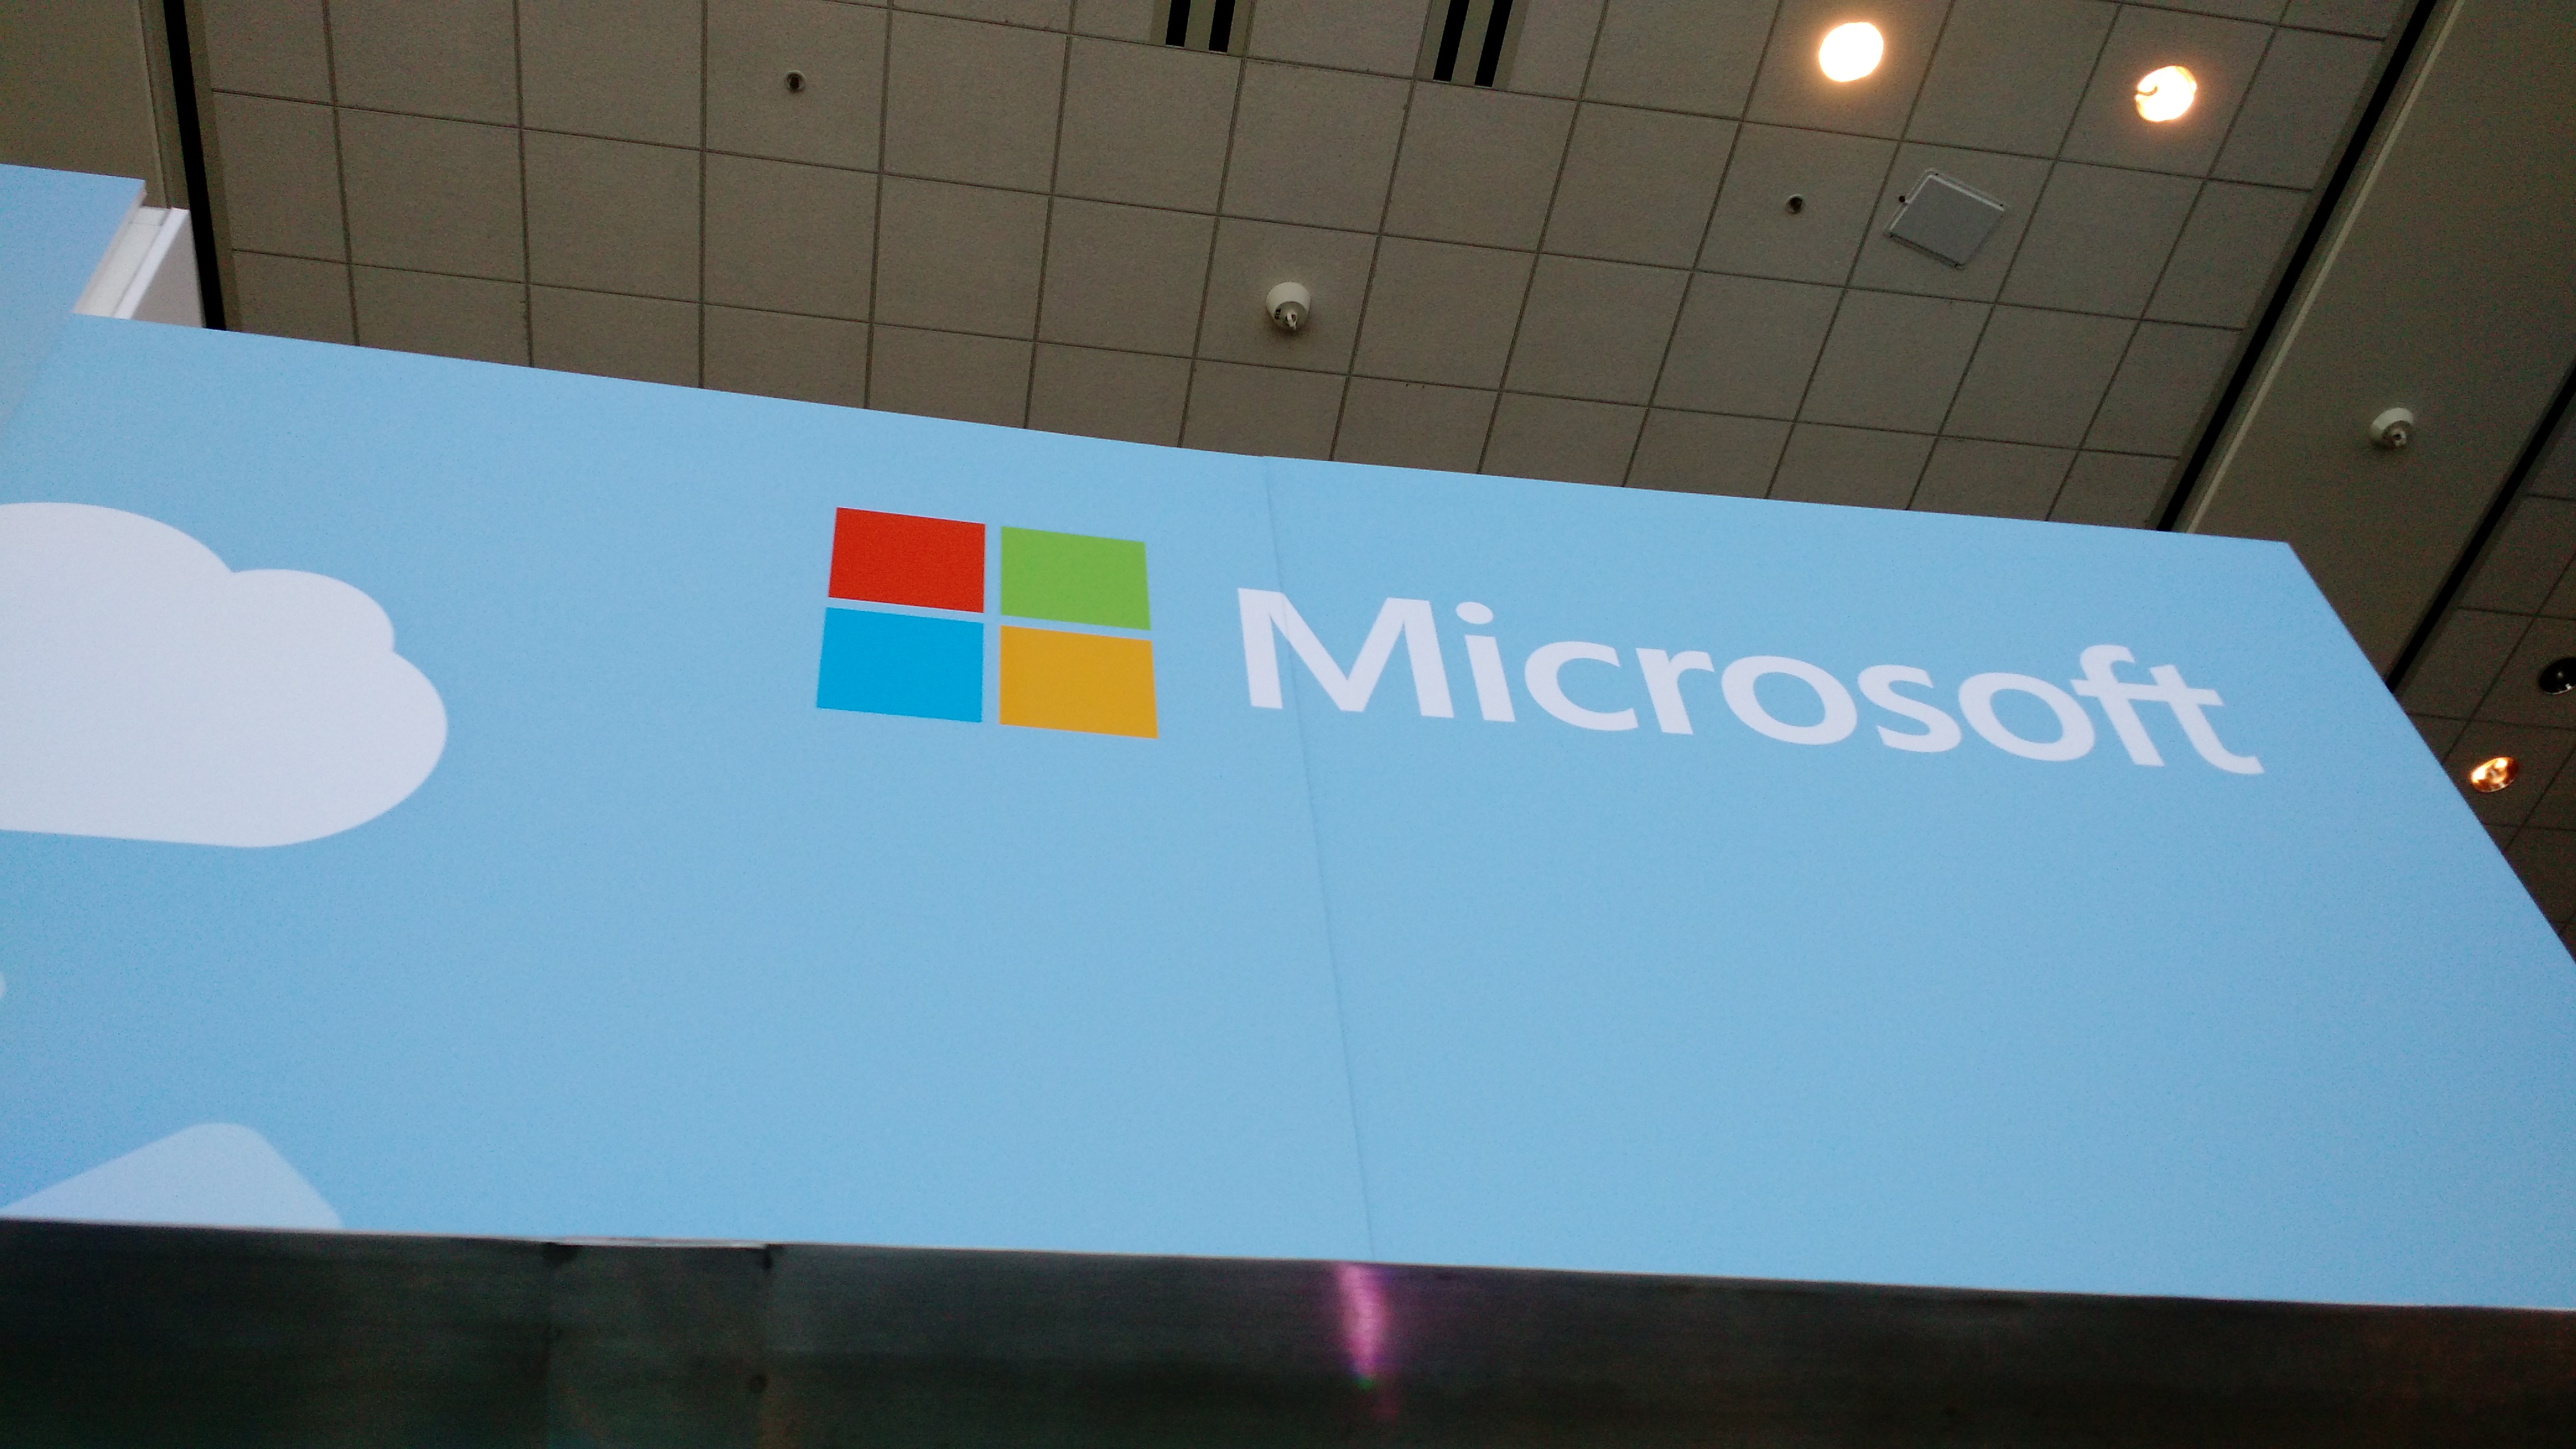 At Microsoft's 2015 Build conference in San Francisco.